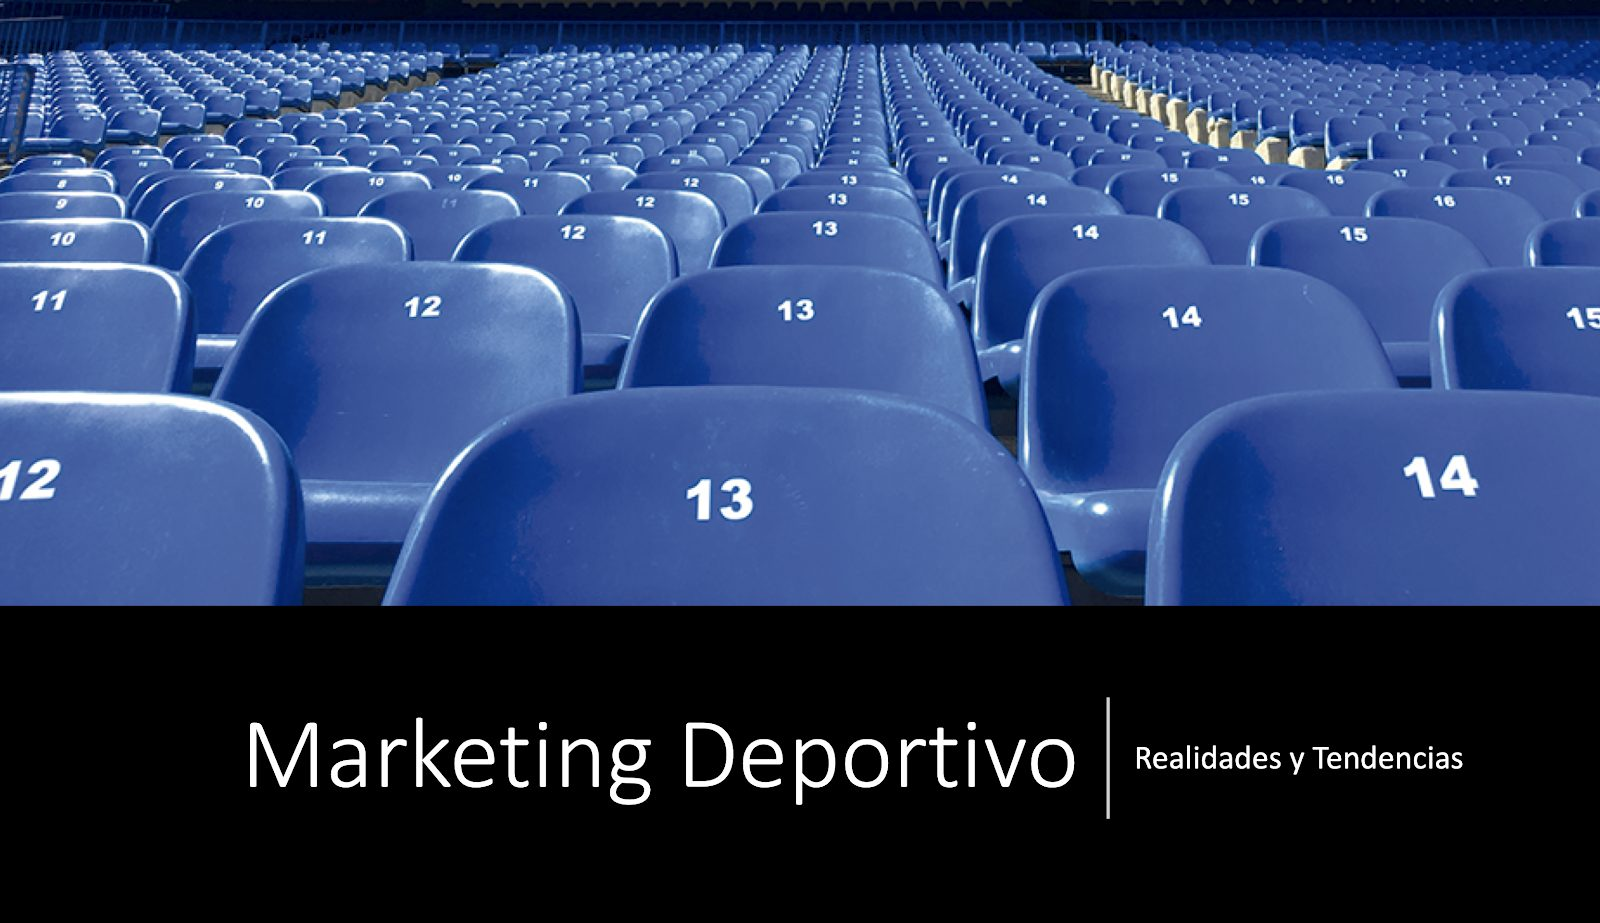 Marketing deportivo - Realidades y tendencias